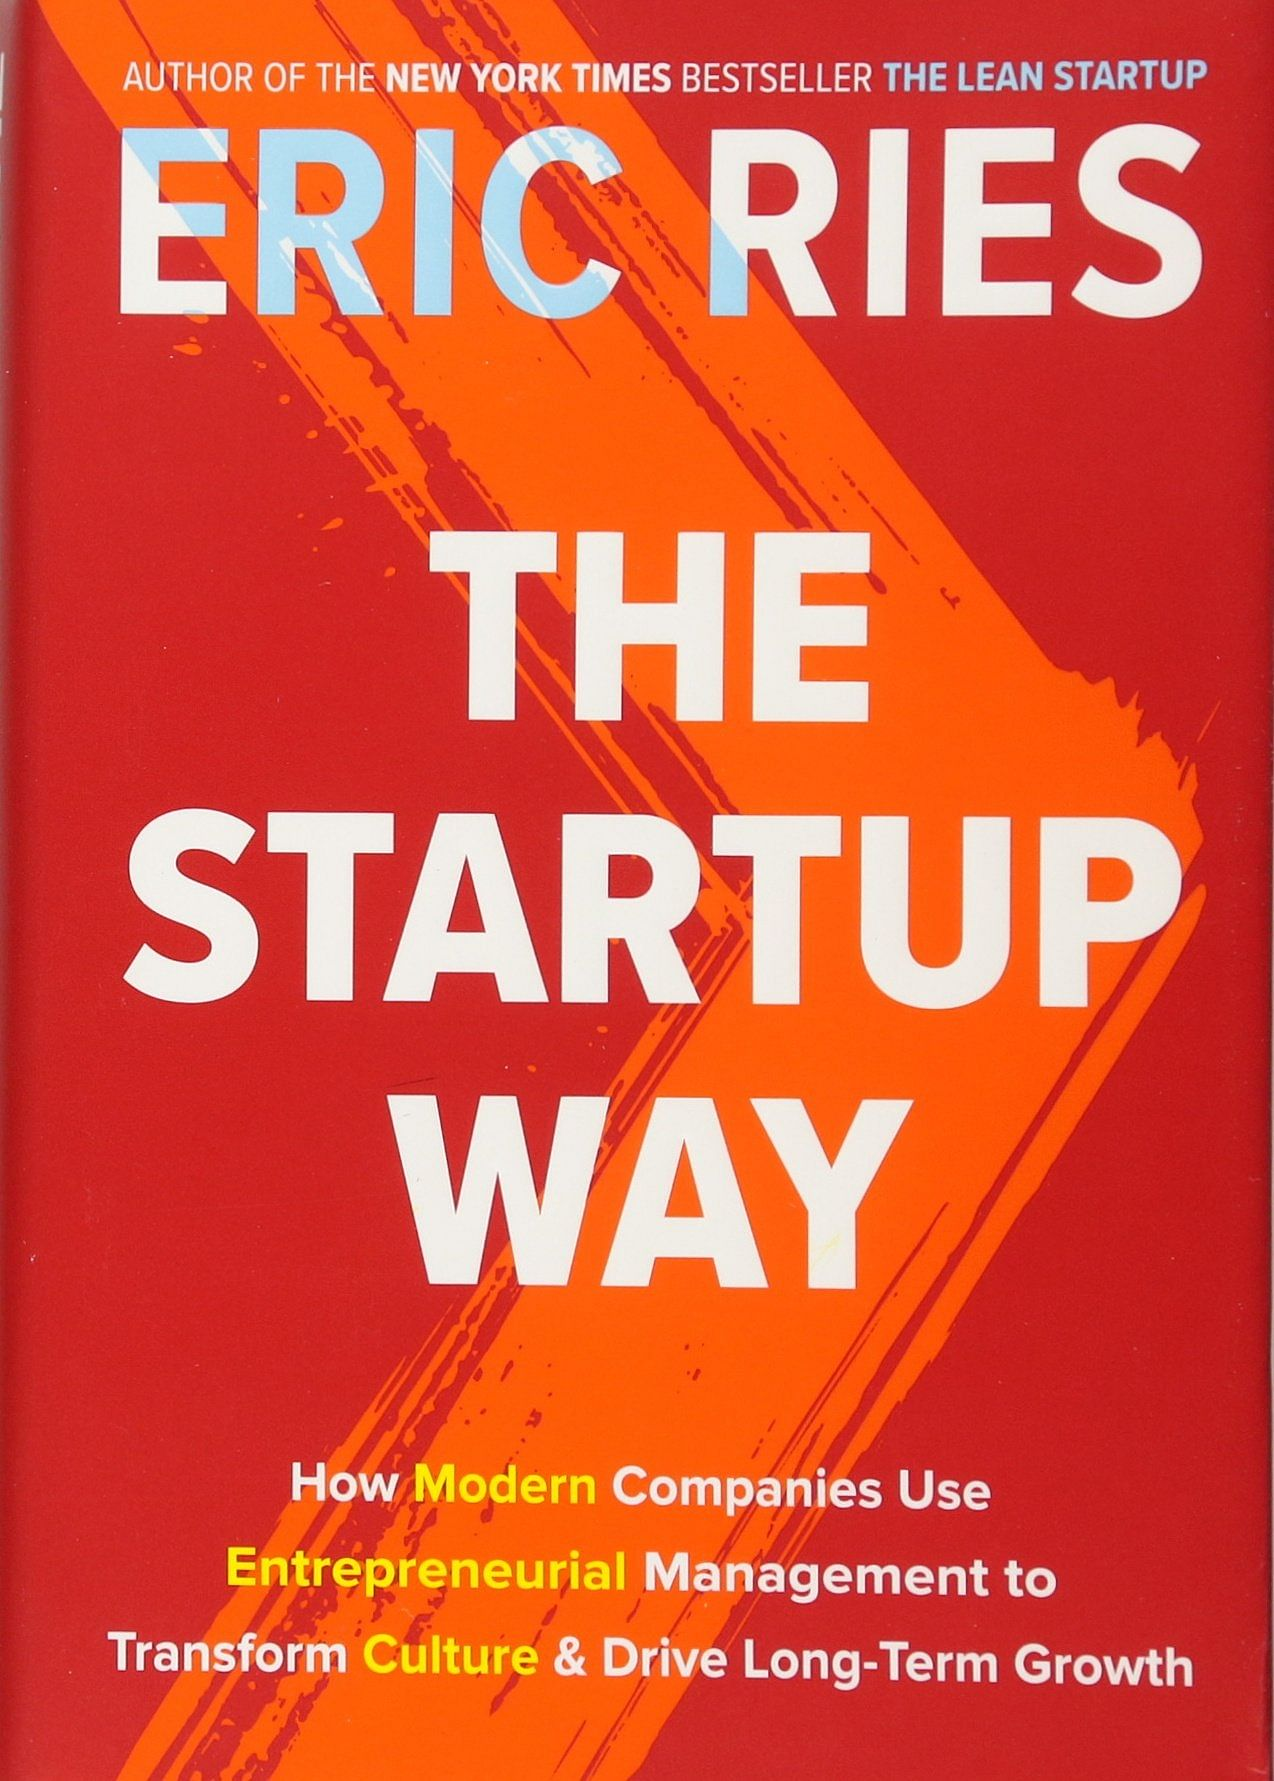 The Lean Startup Way: steps to innovation success, by